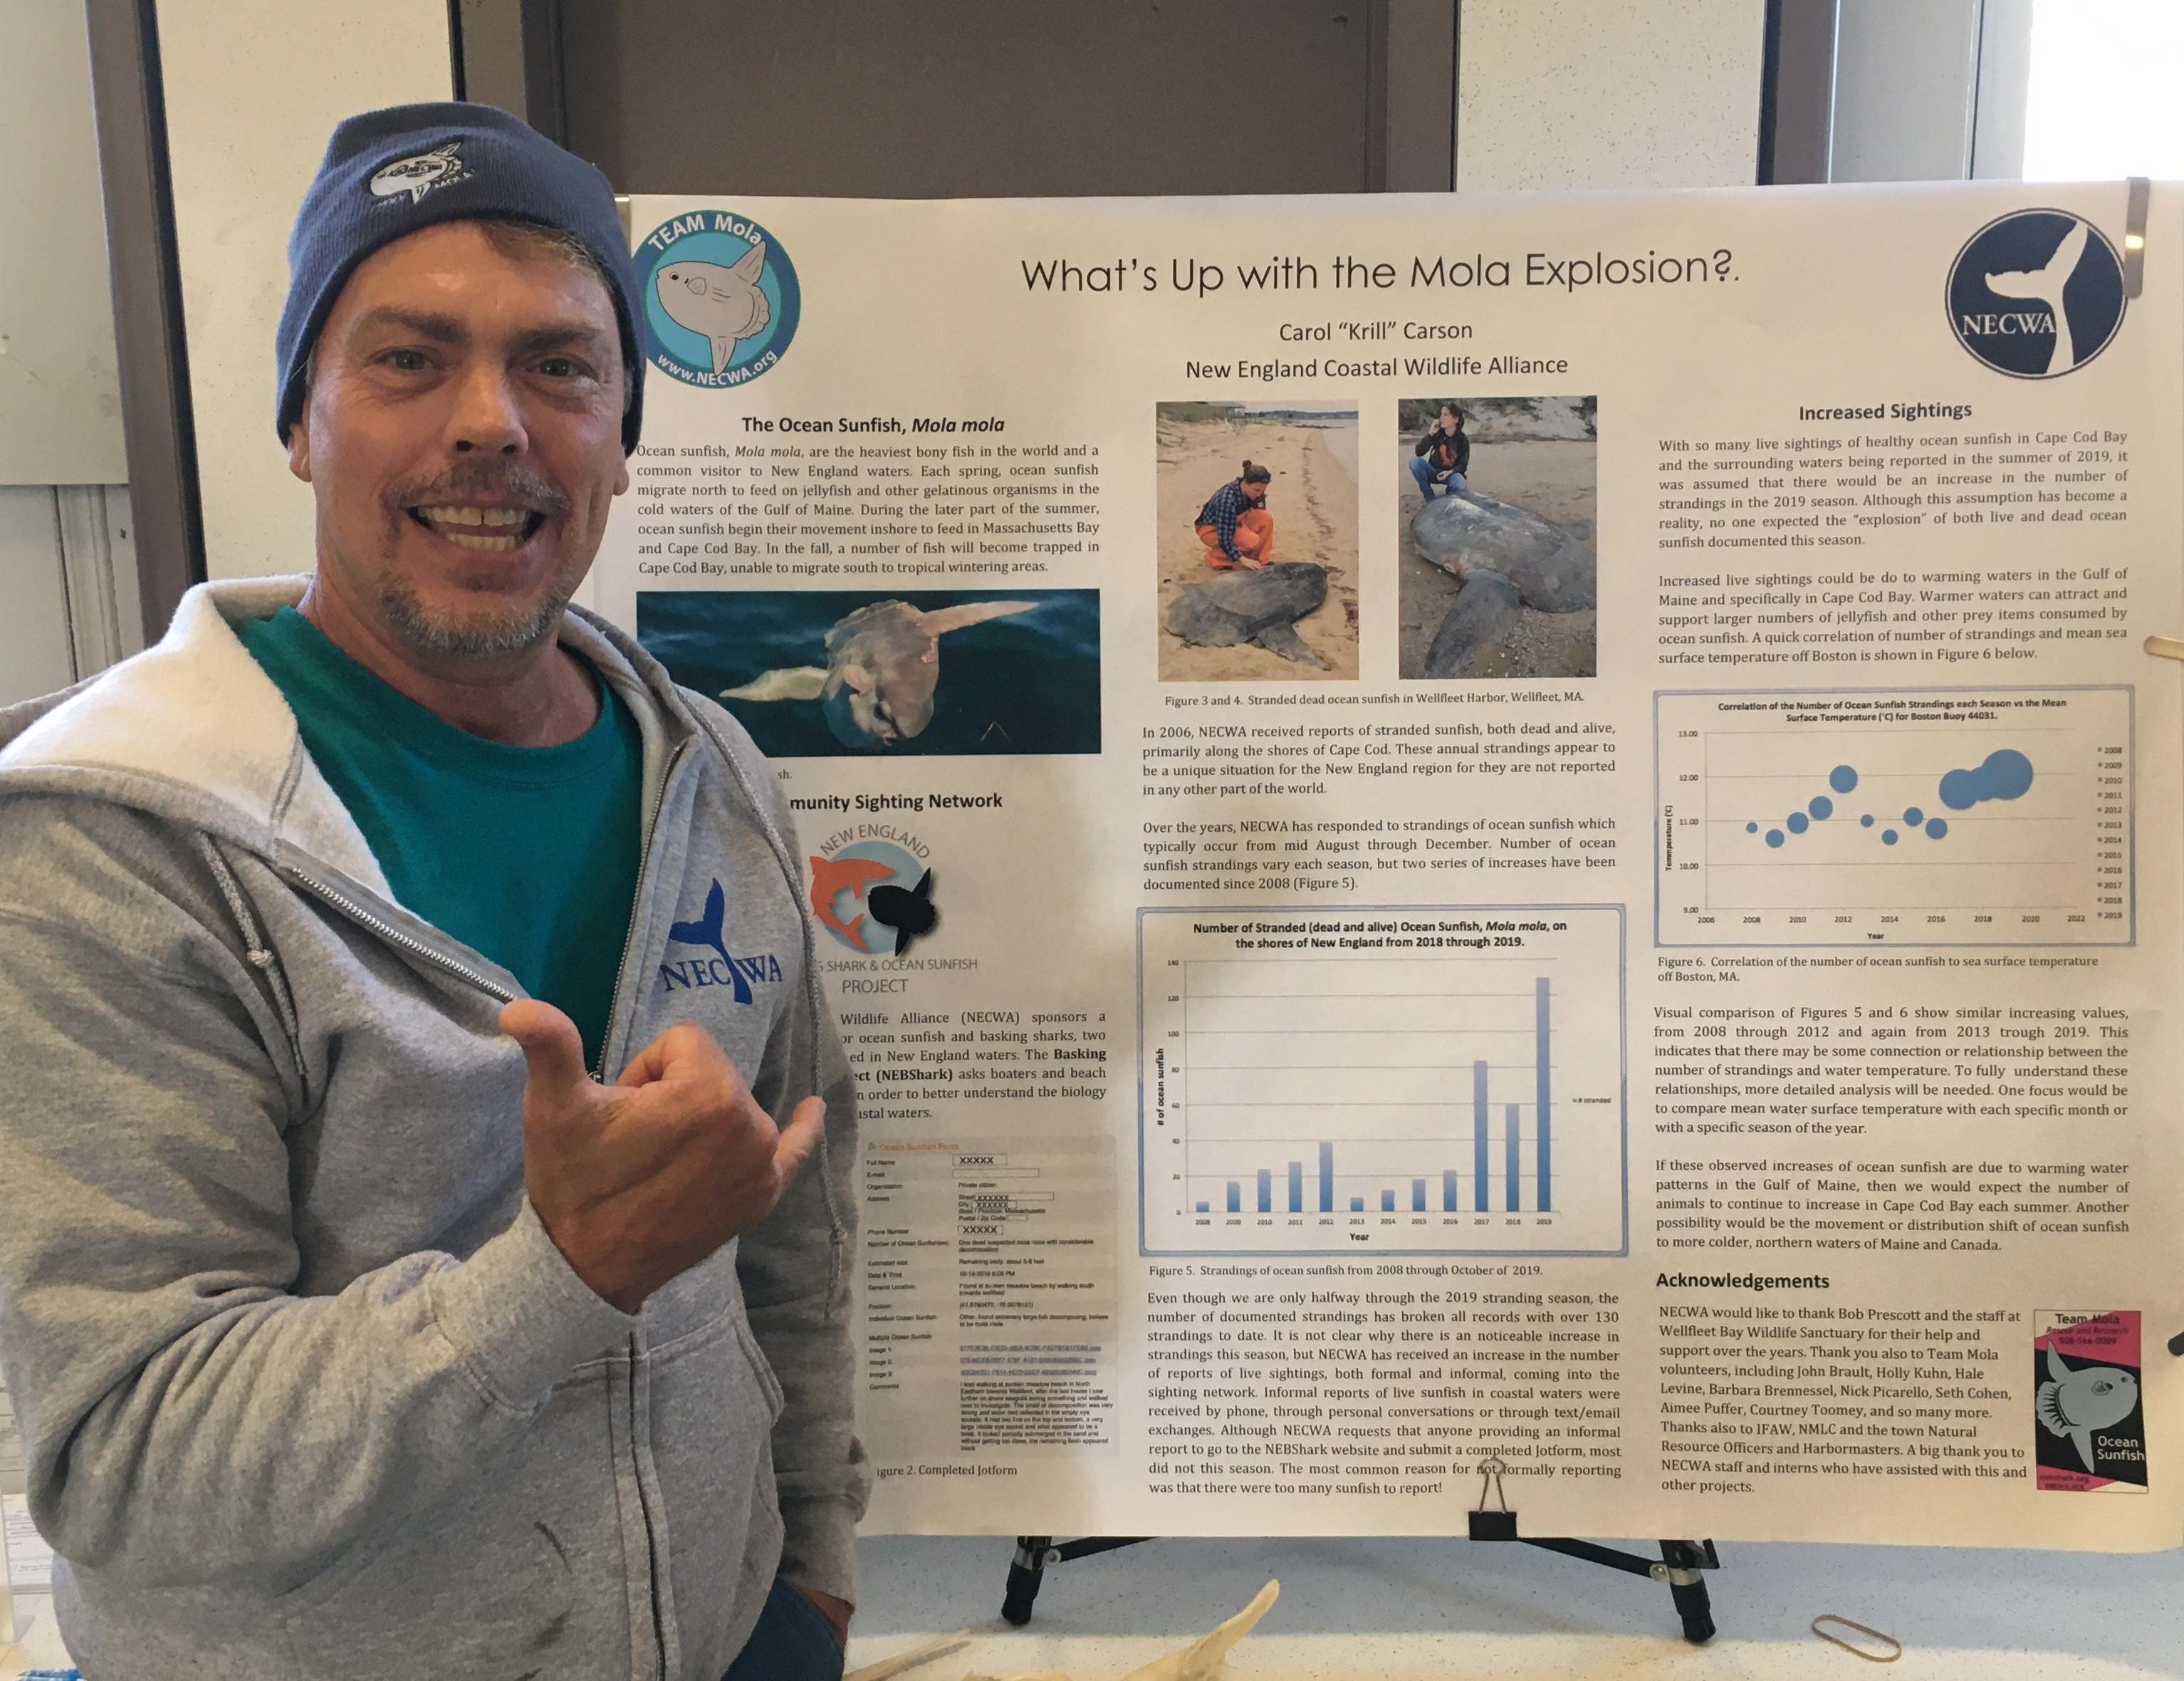 John Brault with Krill Carson's poster on the Mola explosion